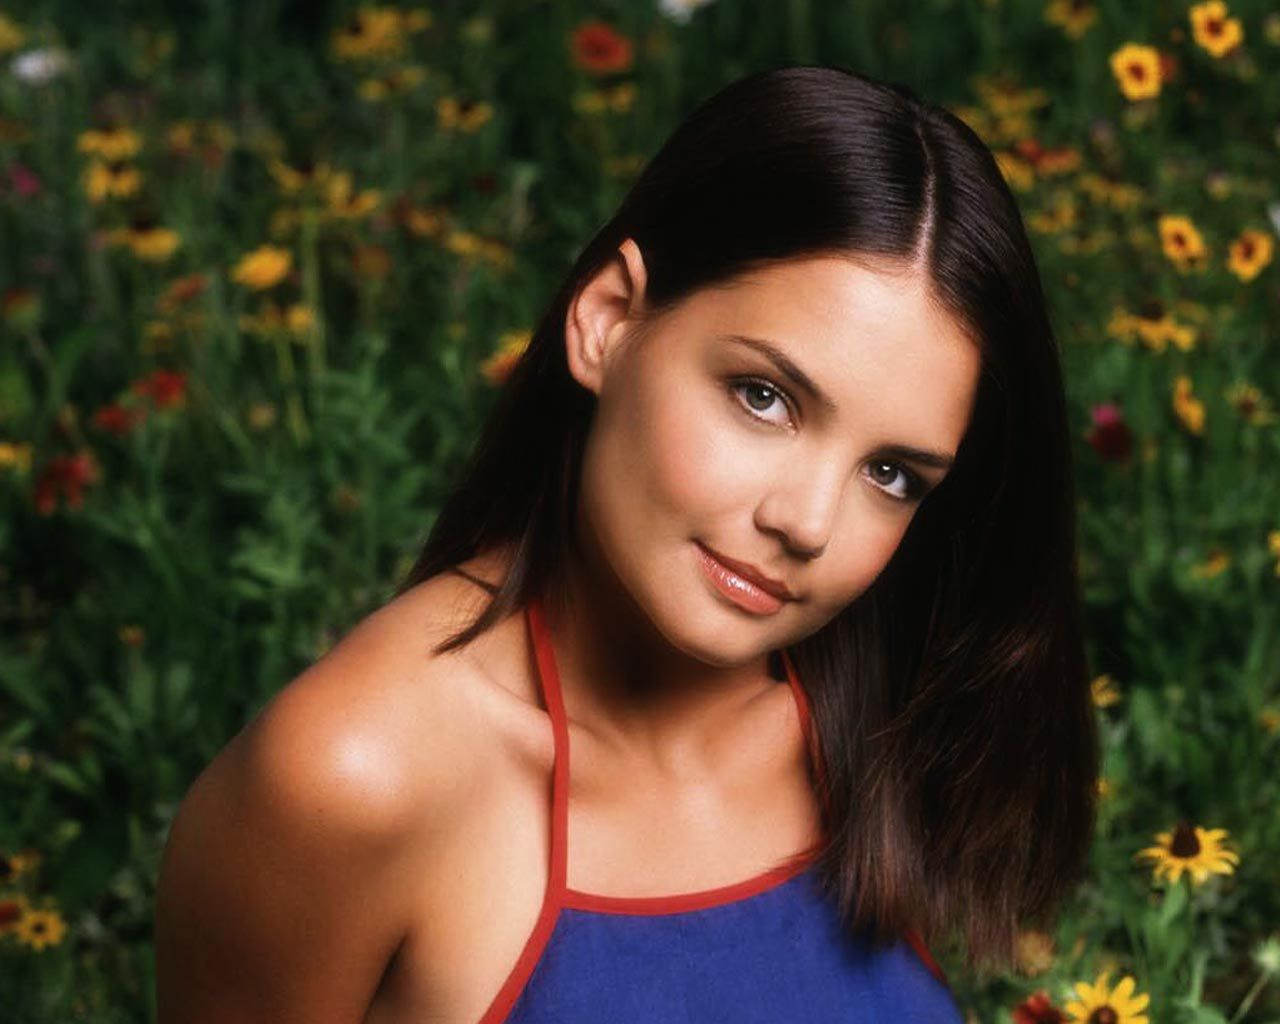 8f535961b6adbdd016d24a472f19f067 21 90s TV Actresses We All Had A Crush On When We Were Younger